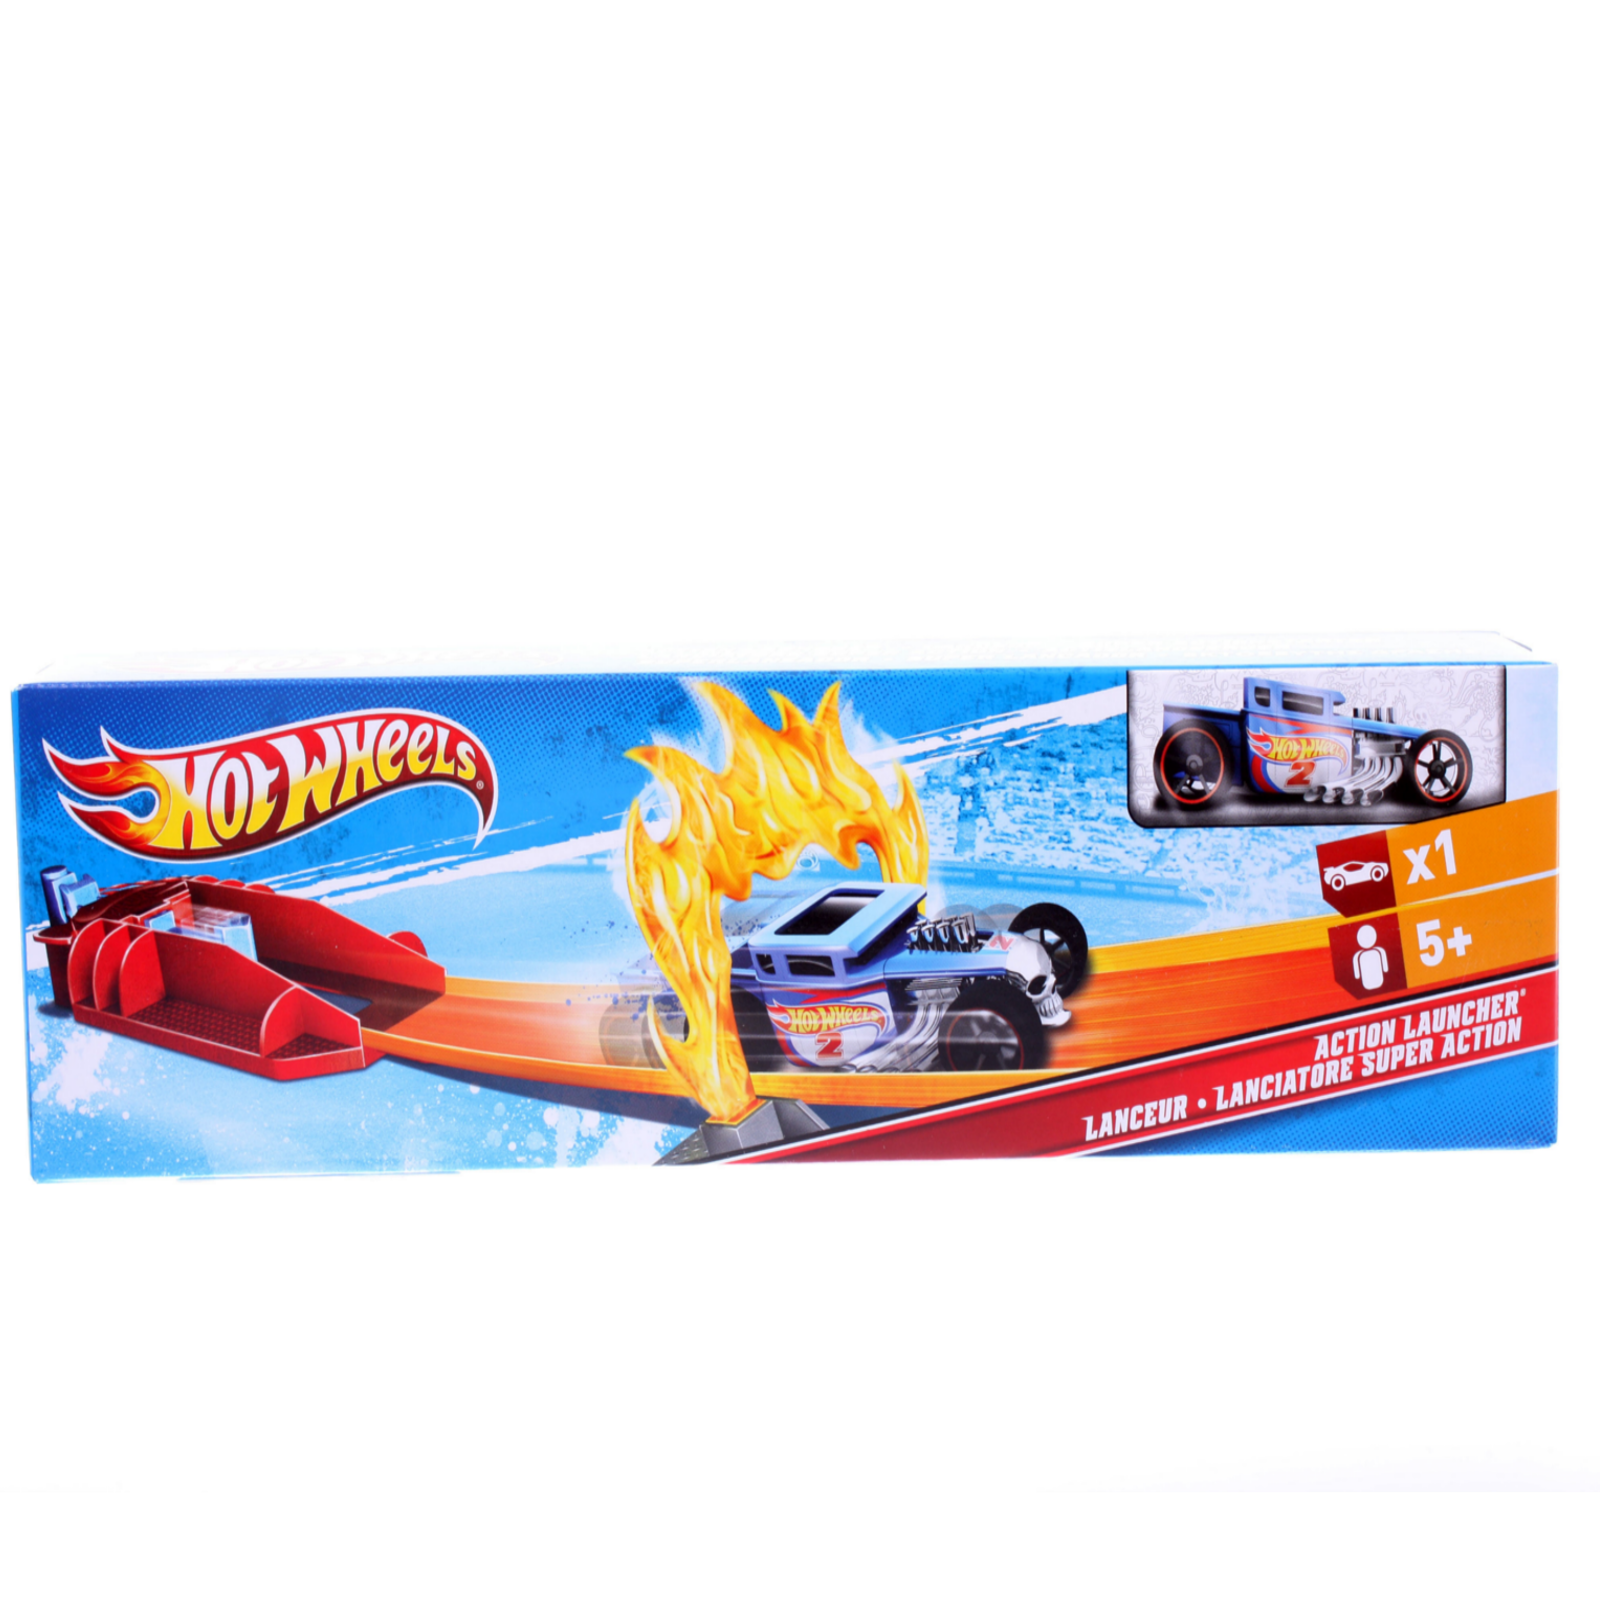 ������� ����� Hot Wheels ���� ������� Action Launcher